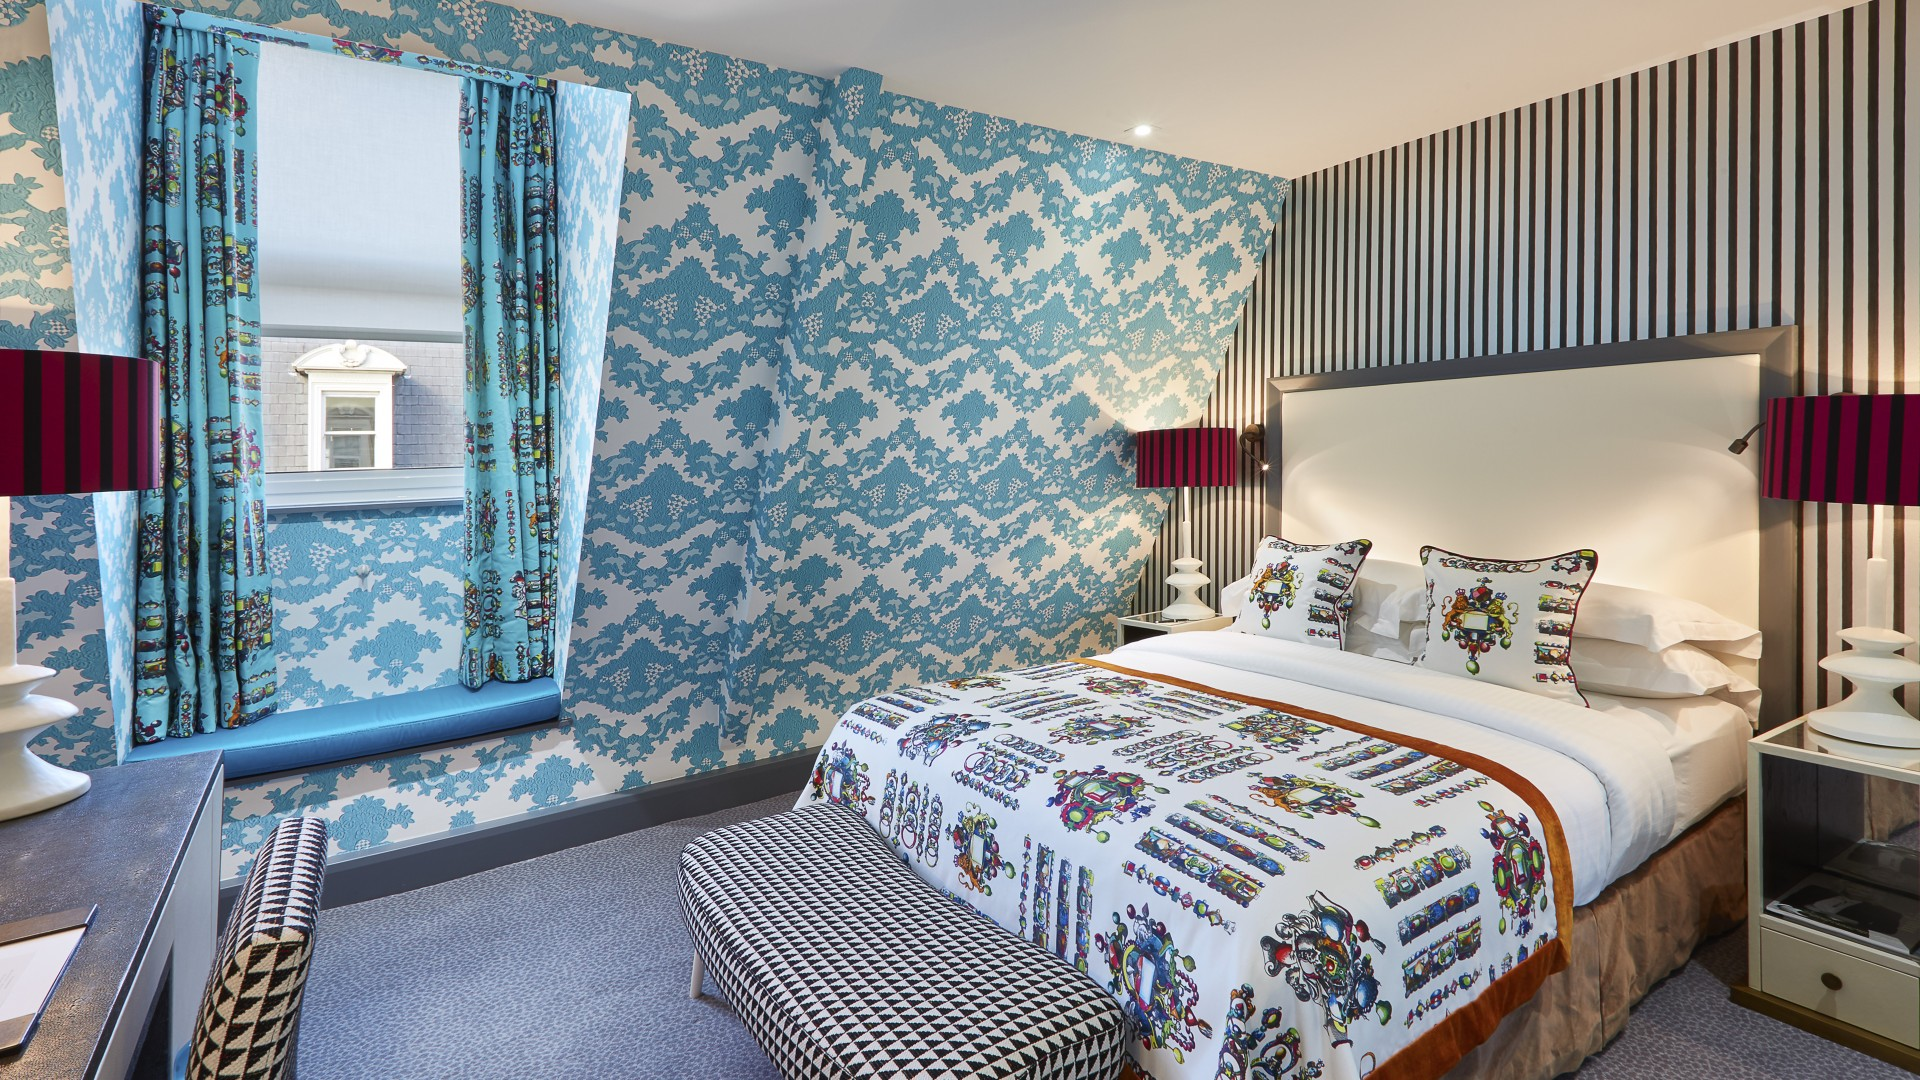 The Mandeville Hotel, French Riviera Rooms – London's best designer hotel suites